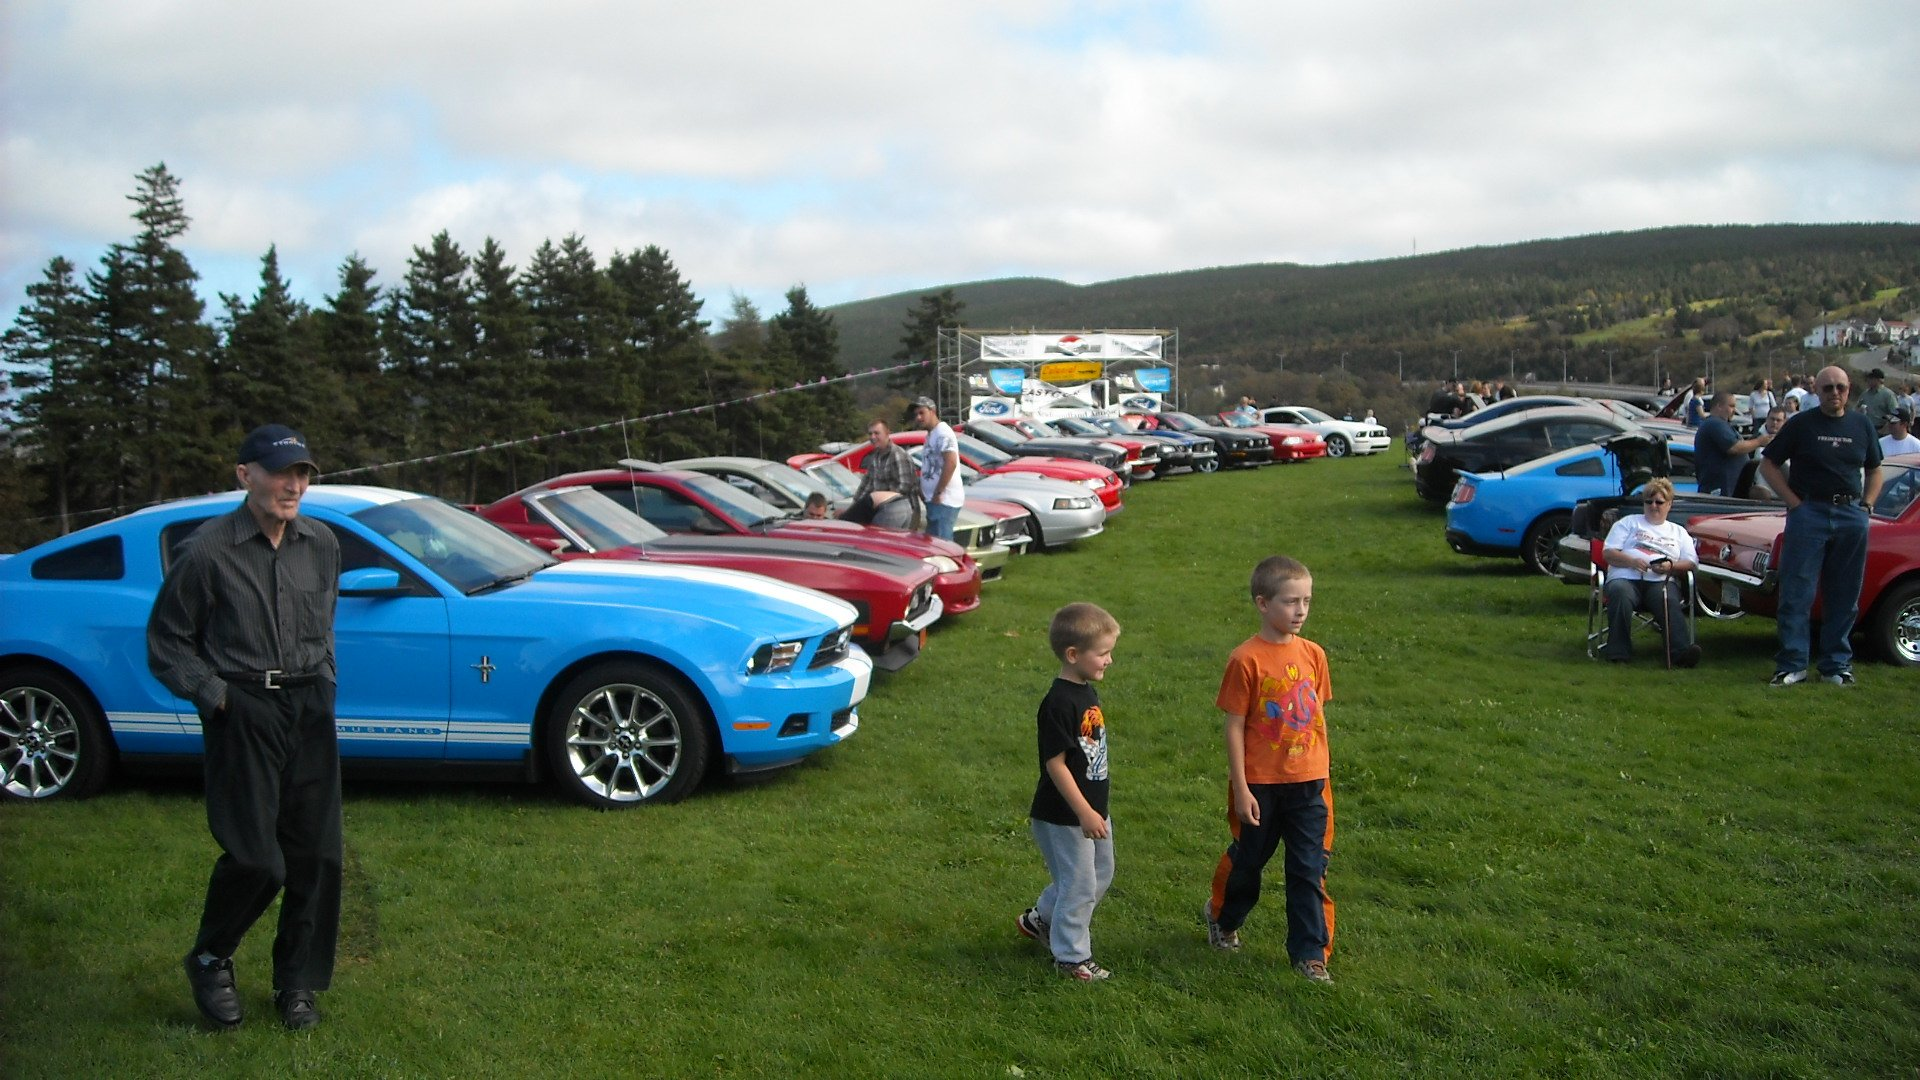 Mustangs in the Park: All Ford Mustangs Car Show in St. John's, Newfoundland-dscn0038.jpg